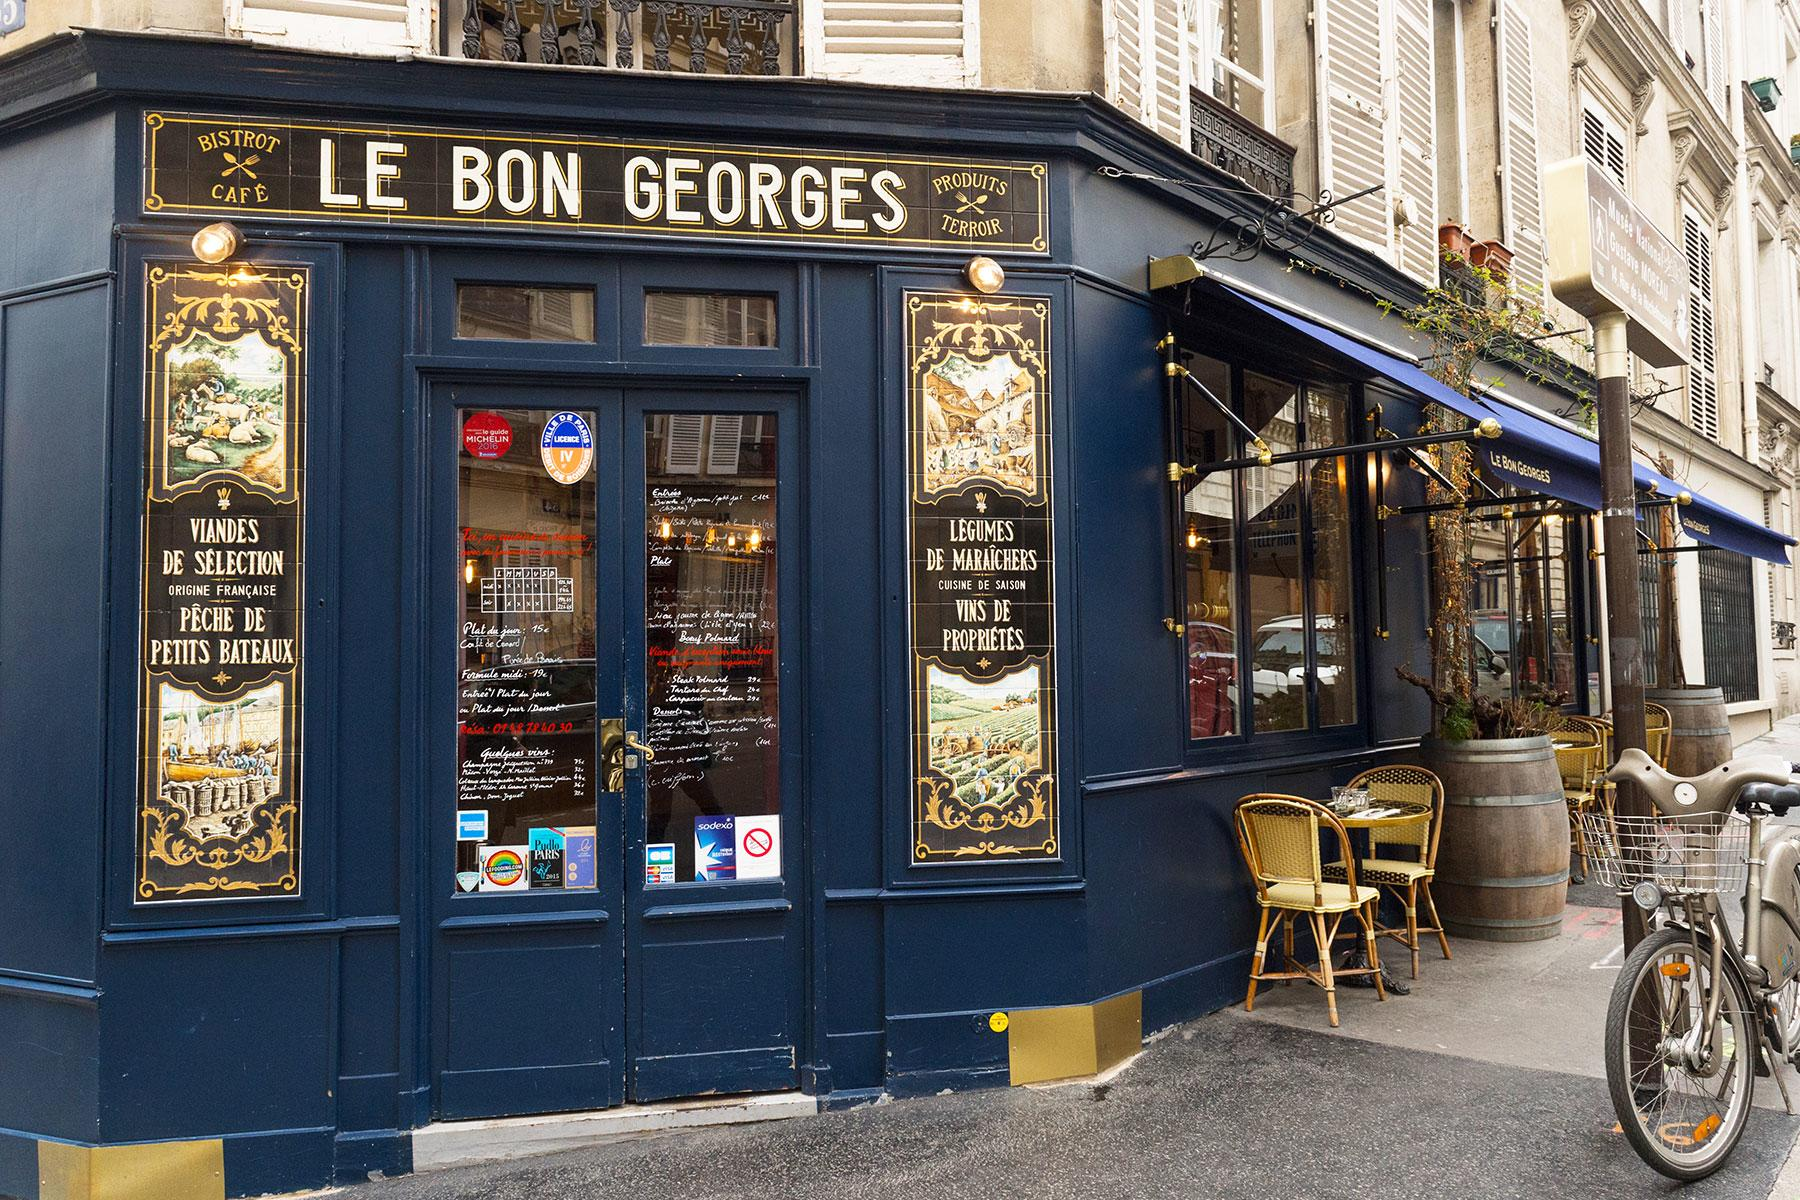 14 classic bistros in paris worth visiting fodors travel guide. Black Bedroom Furniture Sets. Home Design Ideas